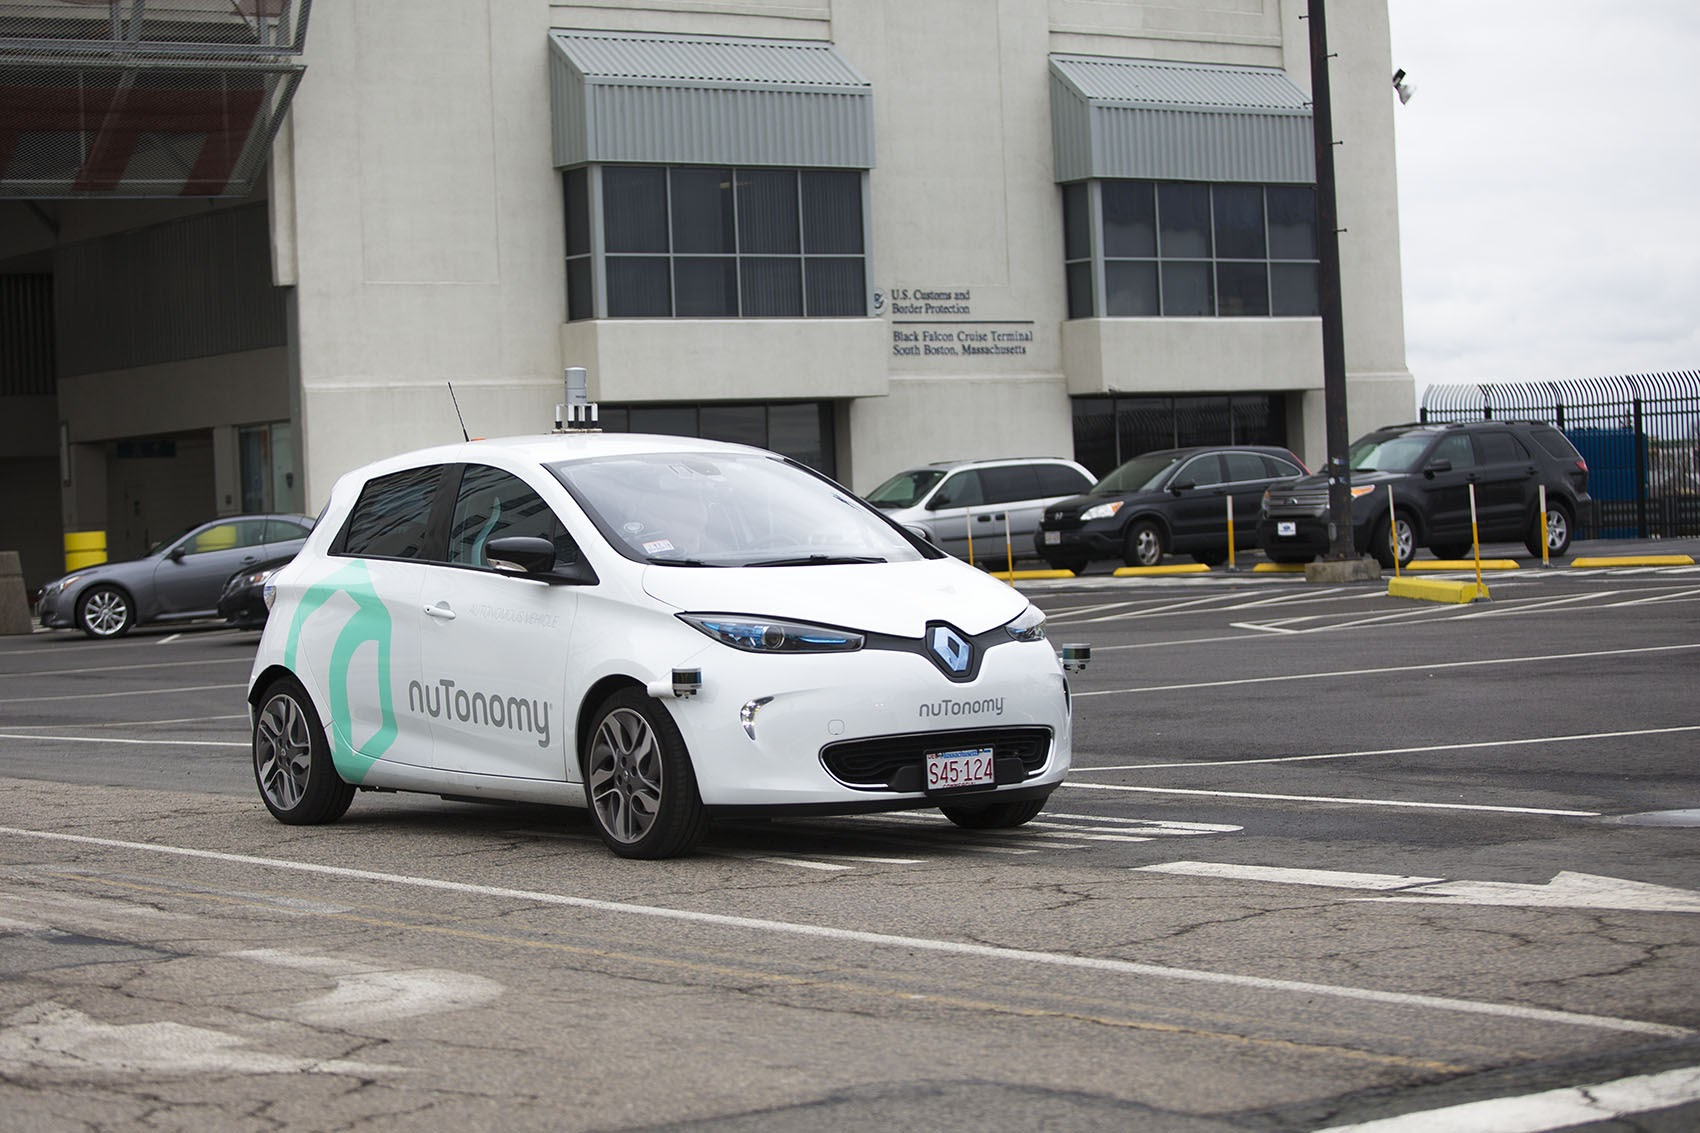 With a driver in the front seat, a nuTonomy's self-driving vehicle is tested on Black Falcon Avenue in Boston's Seaport District. (Jesse Costa/WBUR)